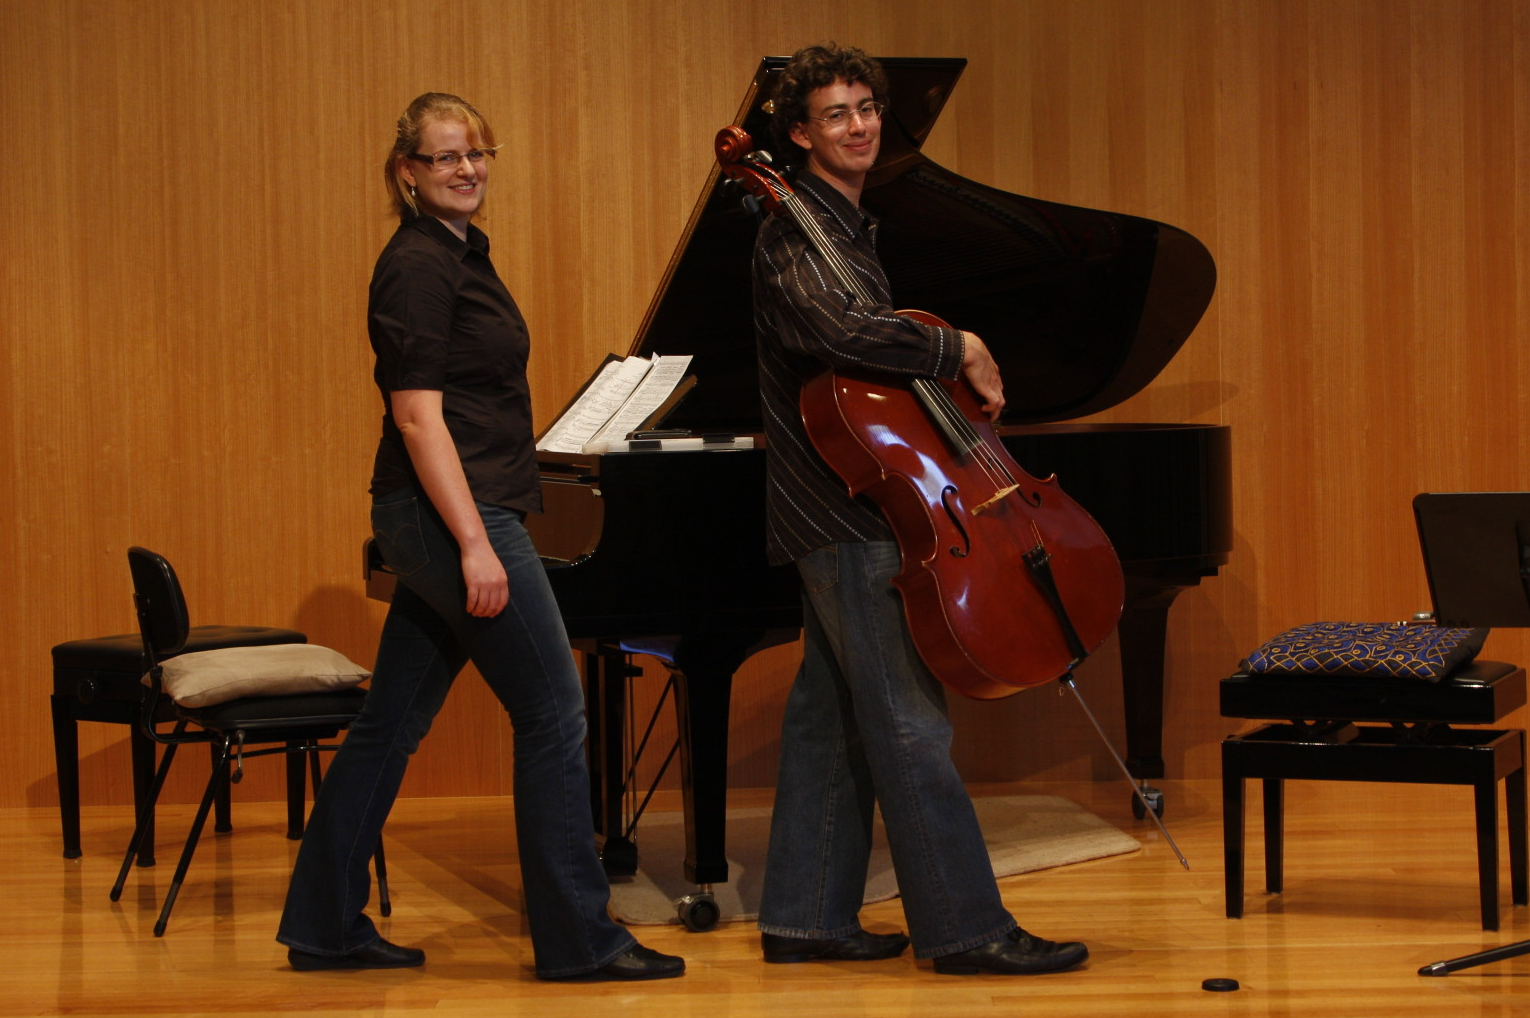 Kimberley Steele & Jack Hobbs at the Wesley Music Centre, March 6, 2013